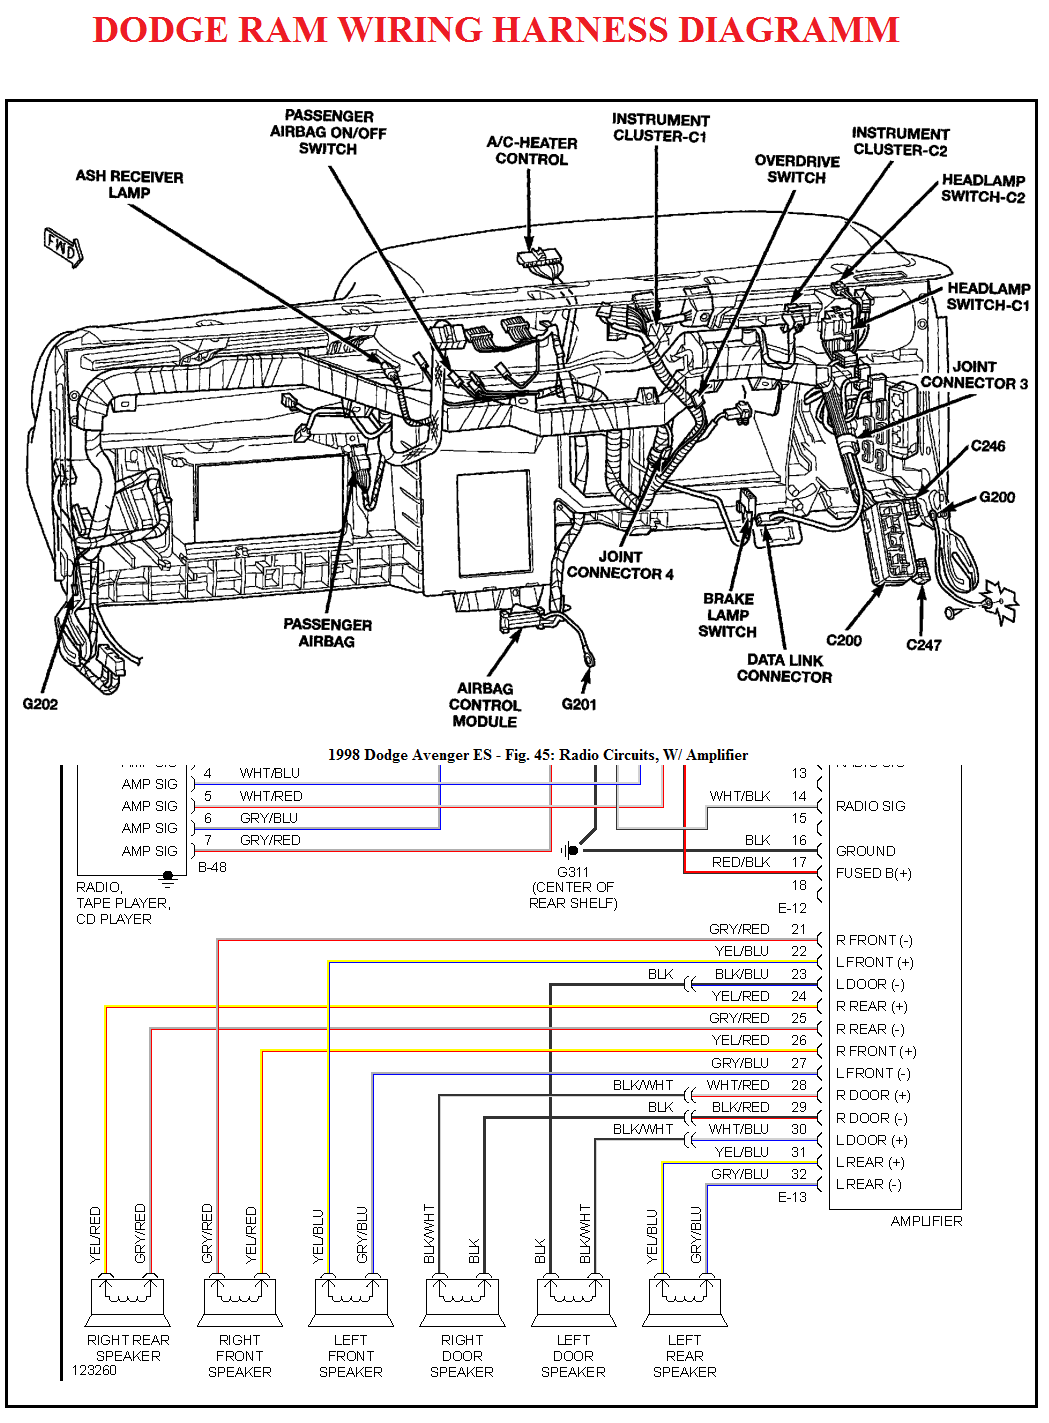 diagram] auto wiring harness diagram full version hd quality harness diagram  - speeddiagram.usrdsicilia.it  diagram database - usrdsicilia.it